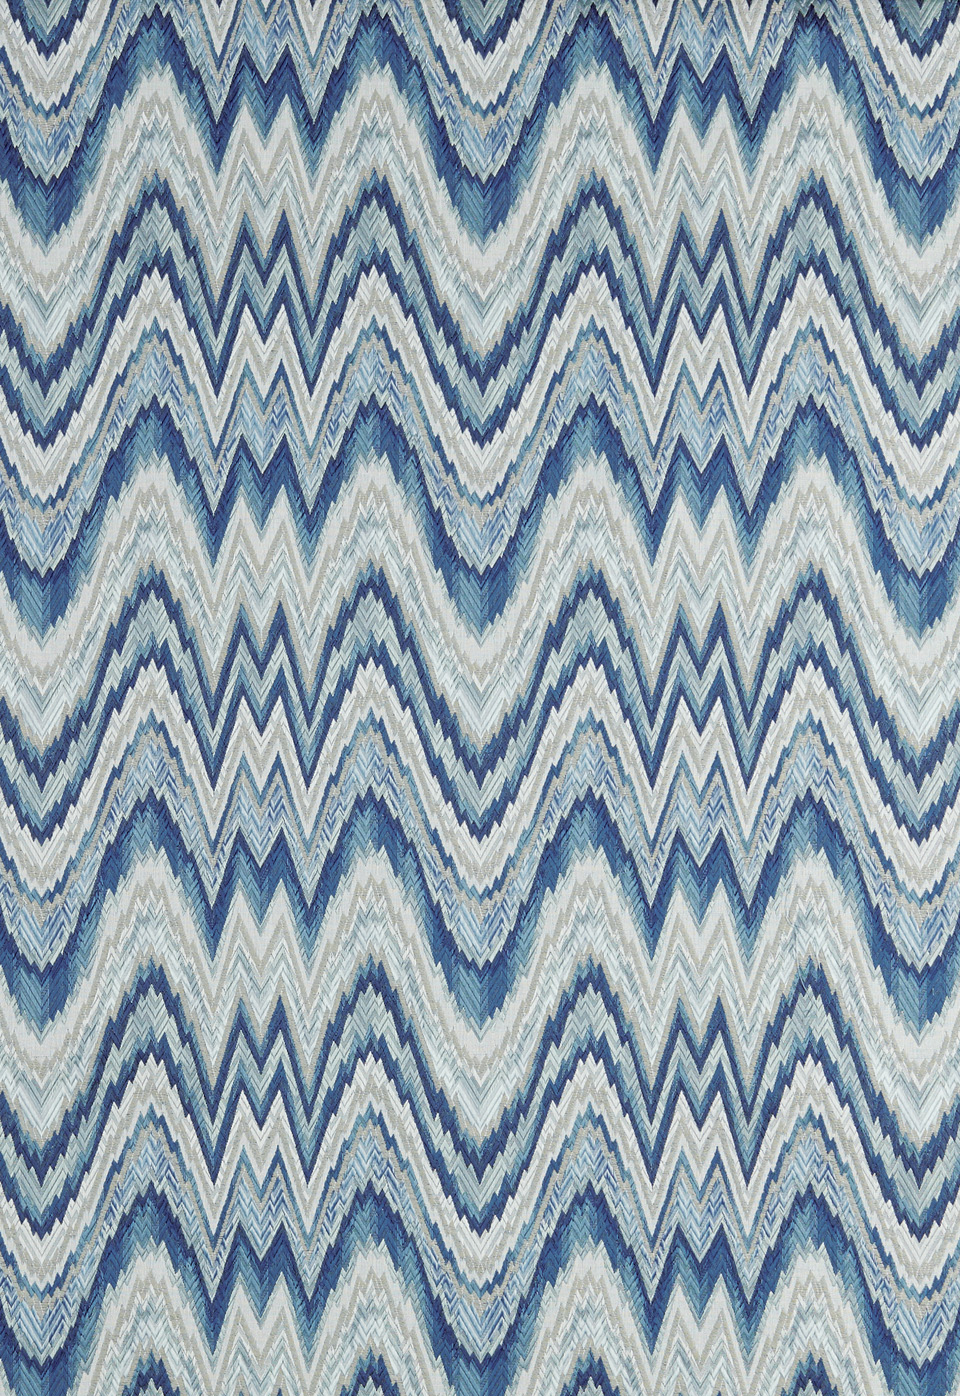 VALKYRIE FLAME STITCH - Delft